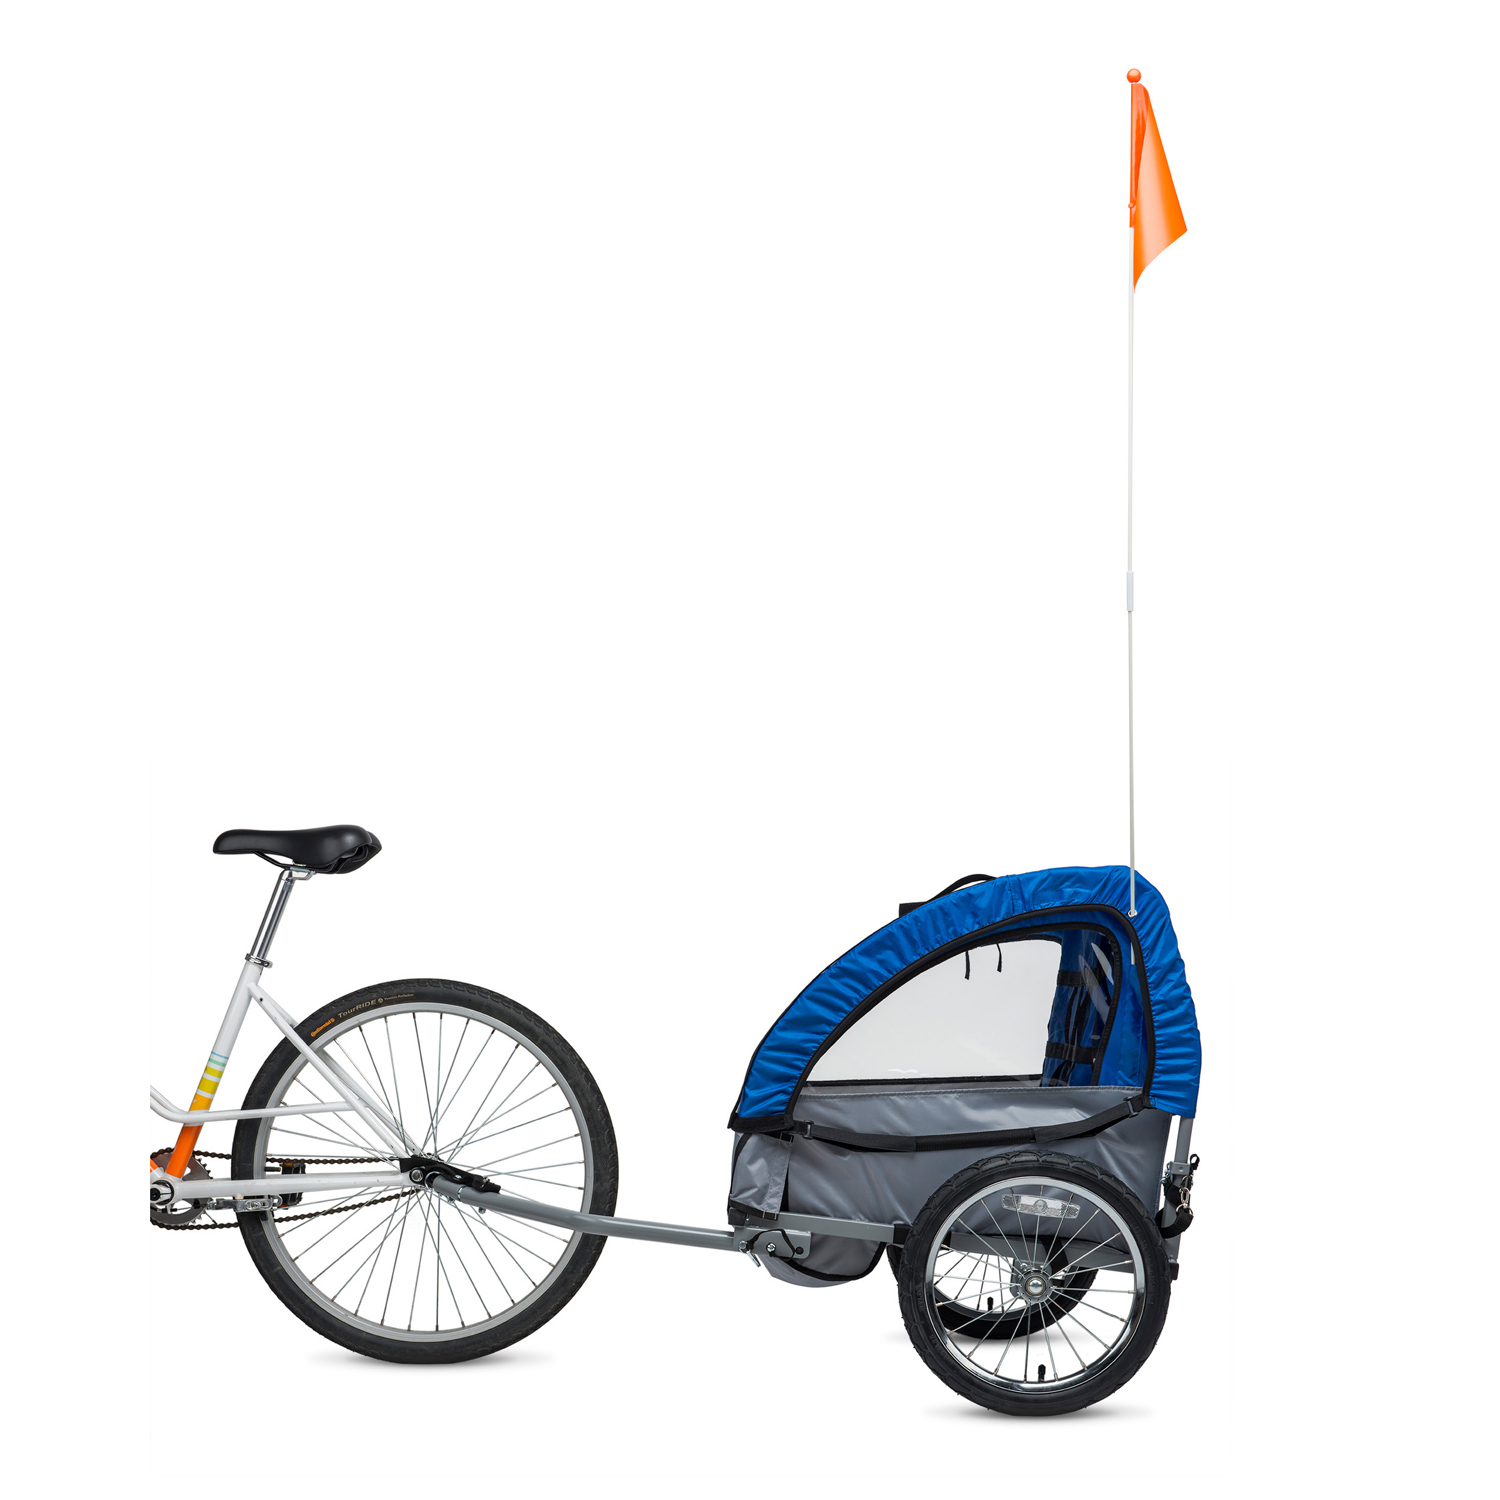 Bell Sports Wallaby Child Bicycle Trailer, Blue/Gray - Walmart.com